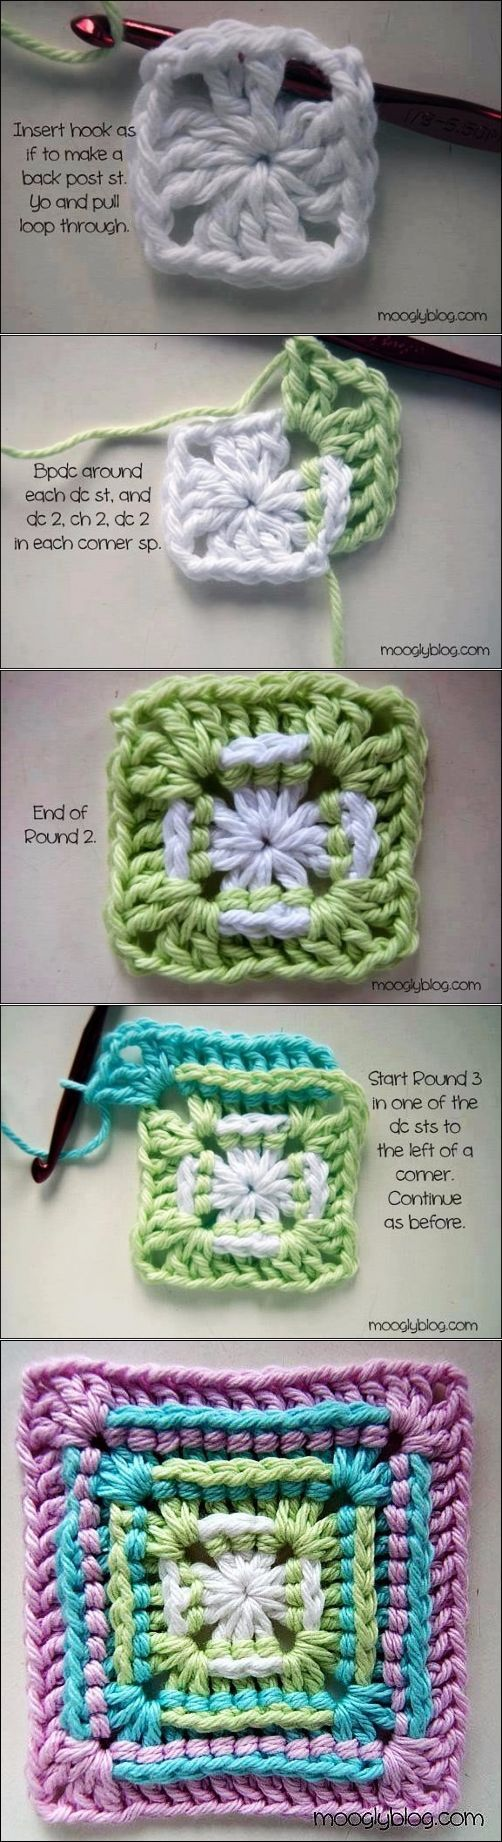 "Archivo subido [ ""Back double crochet granny square"", ""An interesting twist on granny squares."", ""check out my website for more ."", ""Possible wedding favor?"", ""Easier than I thought"", ""Beautiful and simple grandmother"